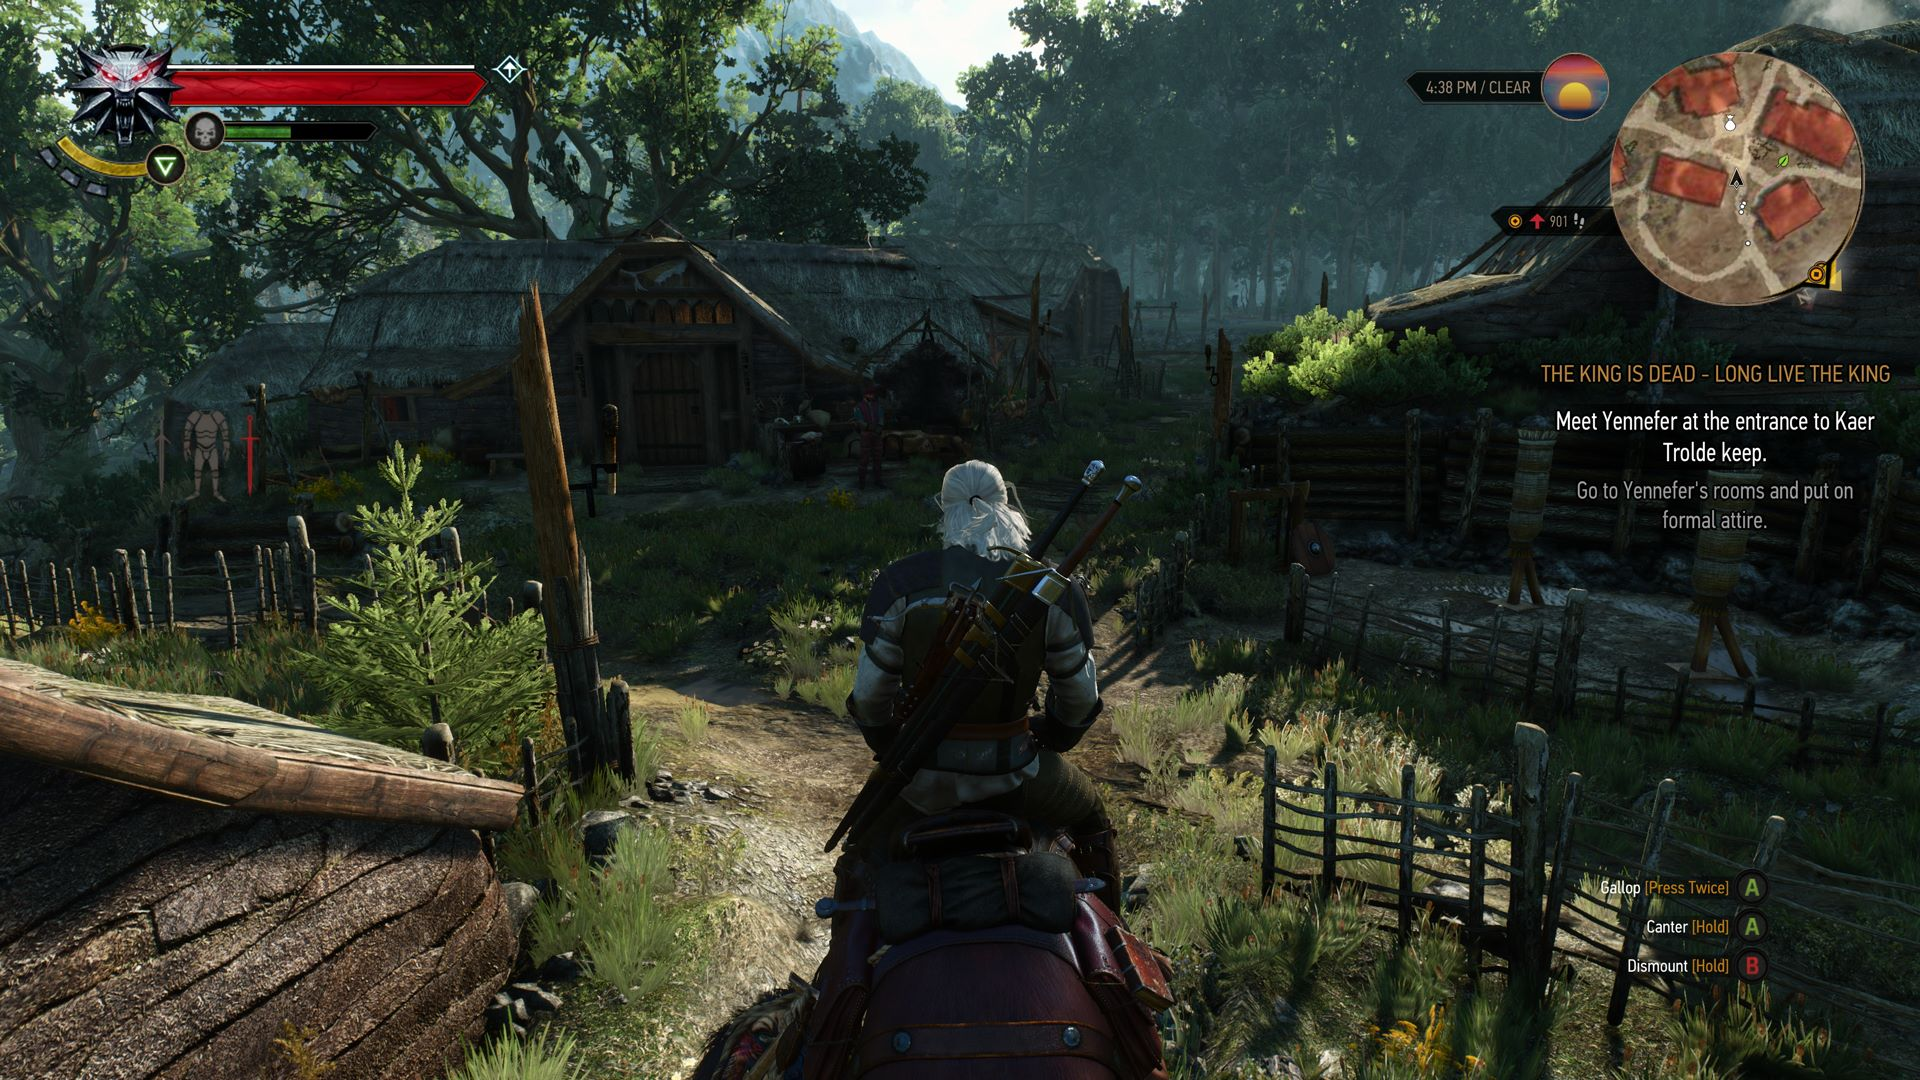 The-Witcher-3-hud